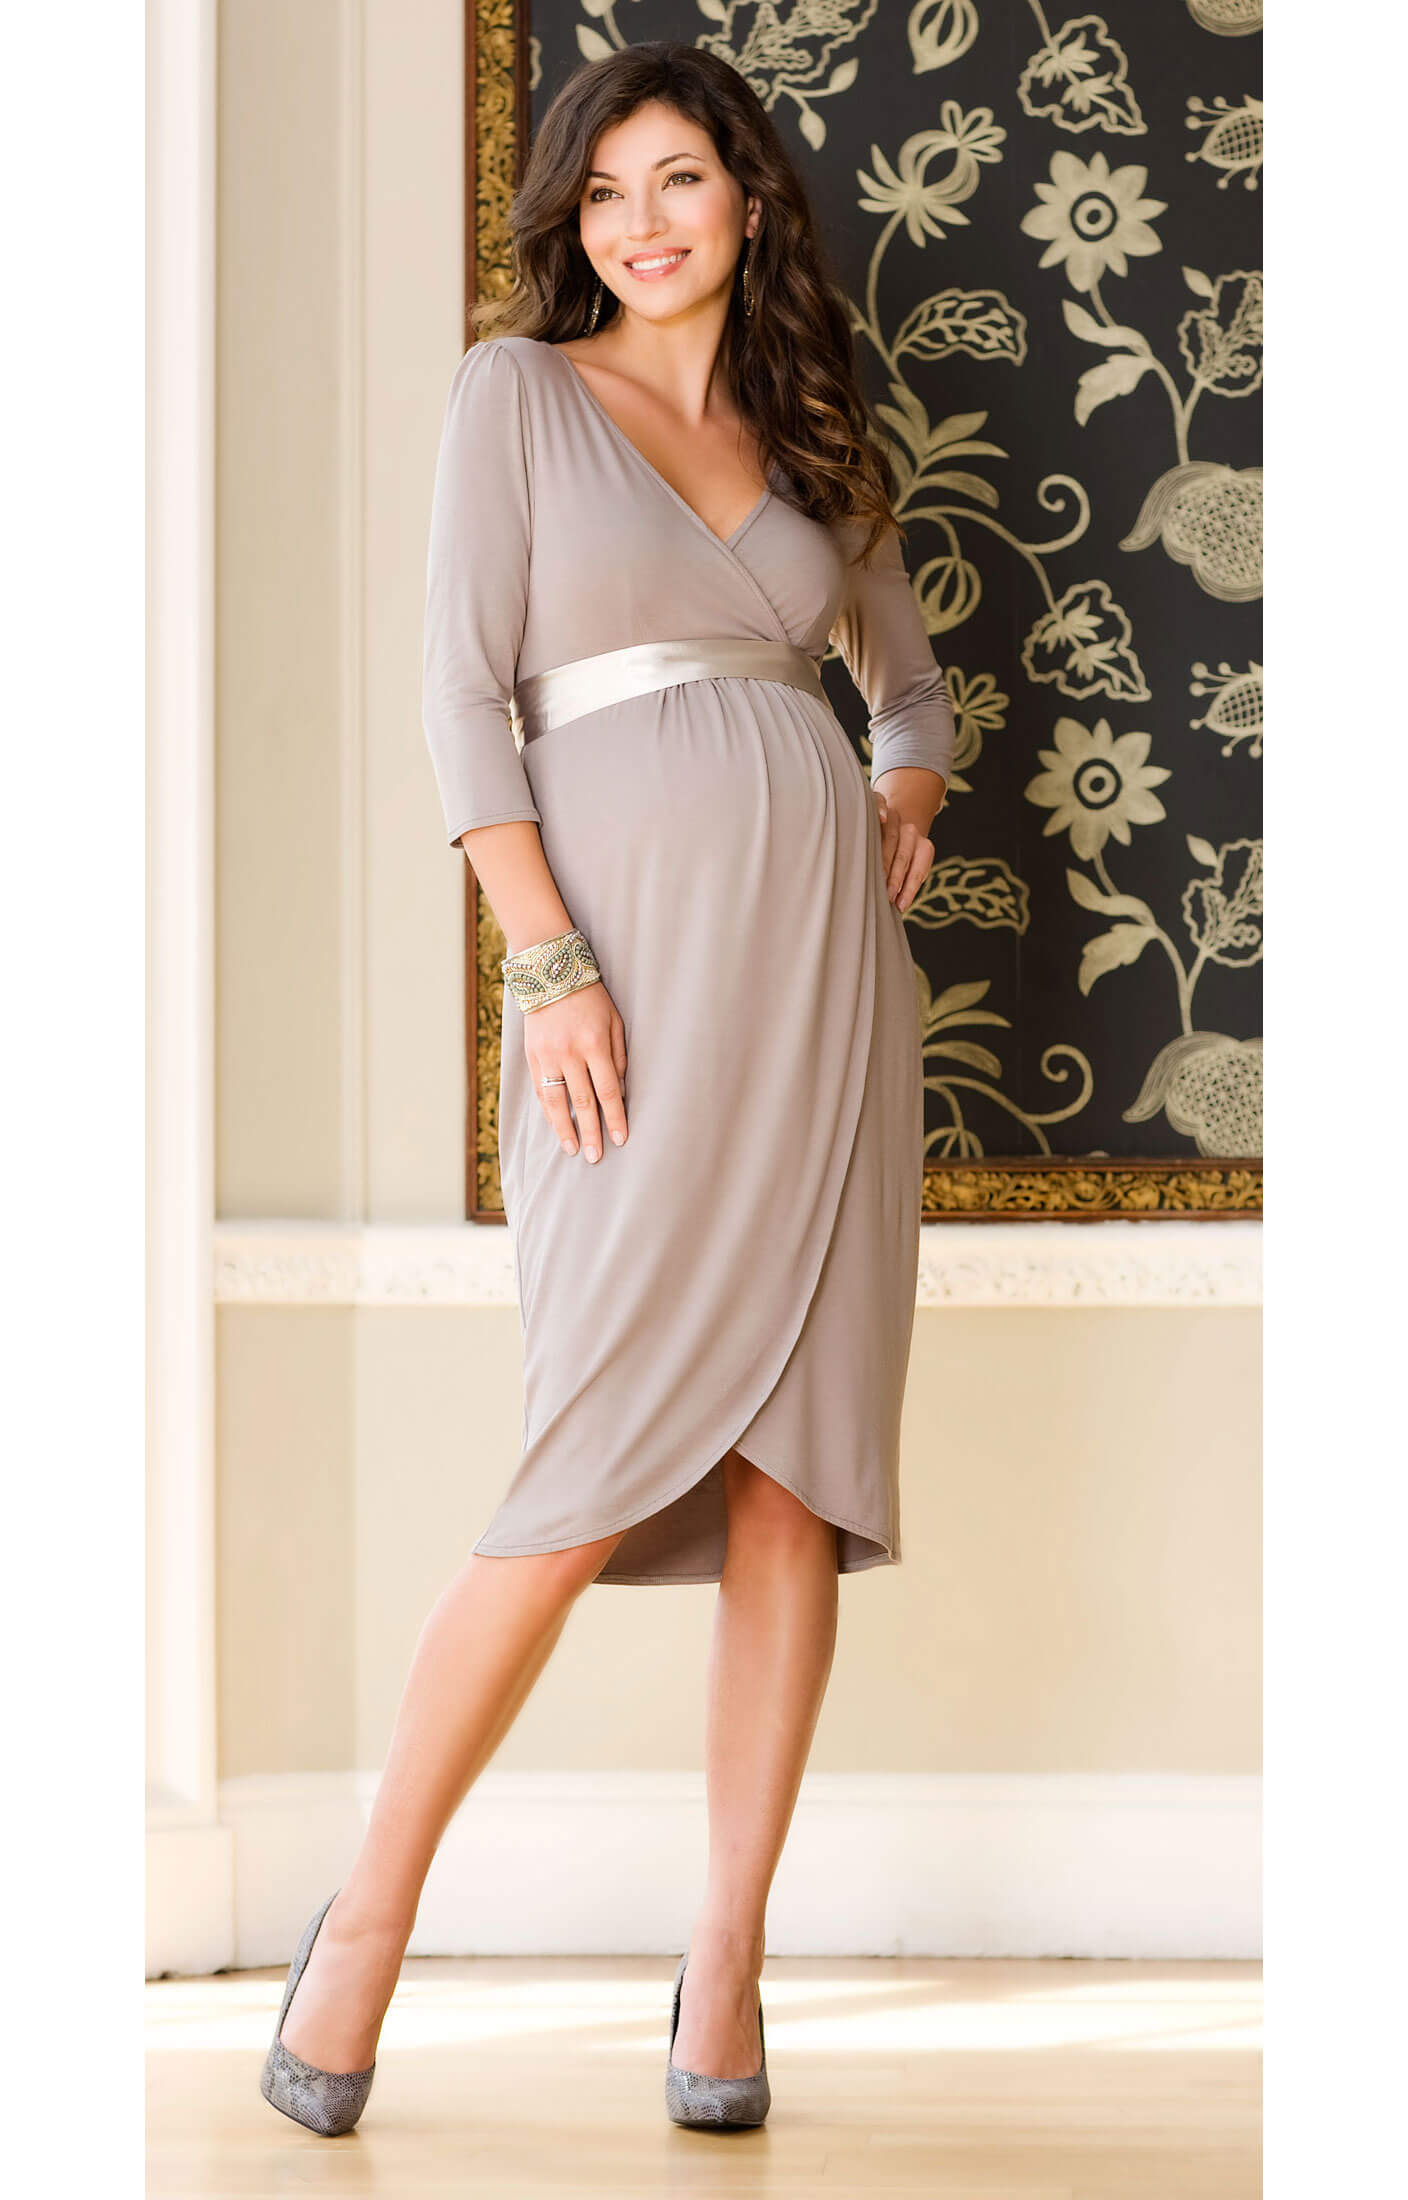 Tulip maternity dress pale grey maternity wedding dresses tulip maternity dress pale grey by tiffany rose ombrellifo Image collections